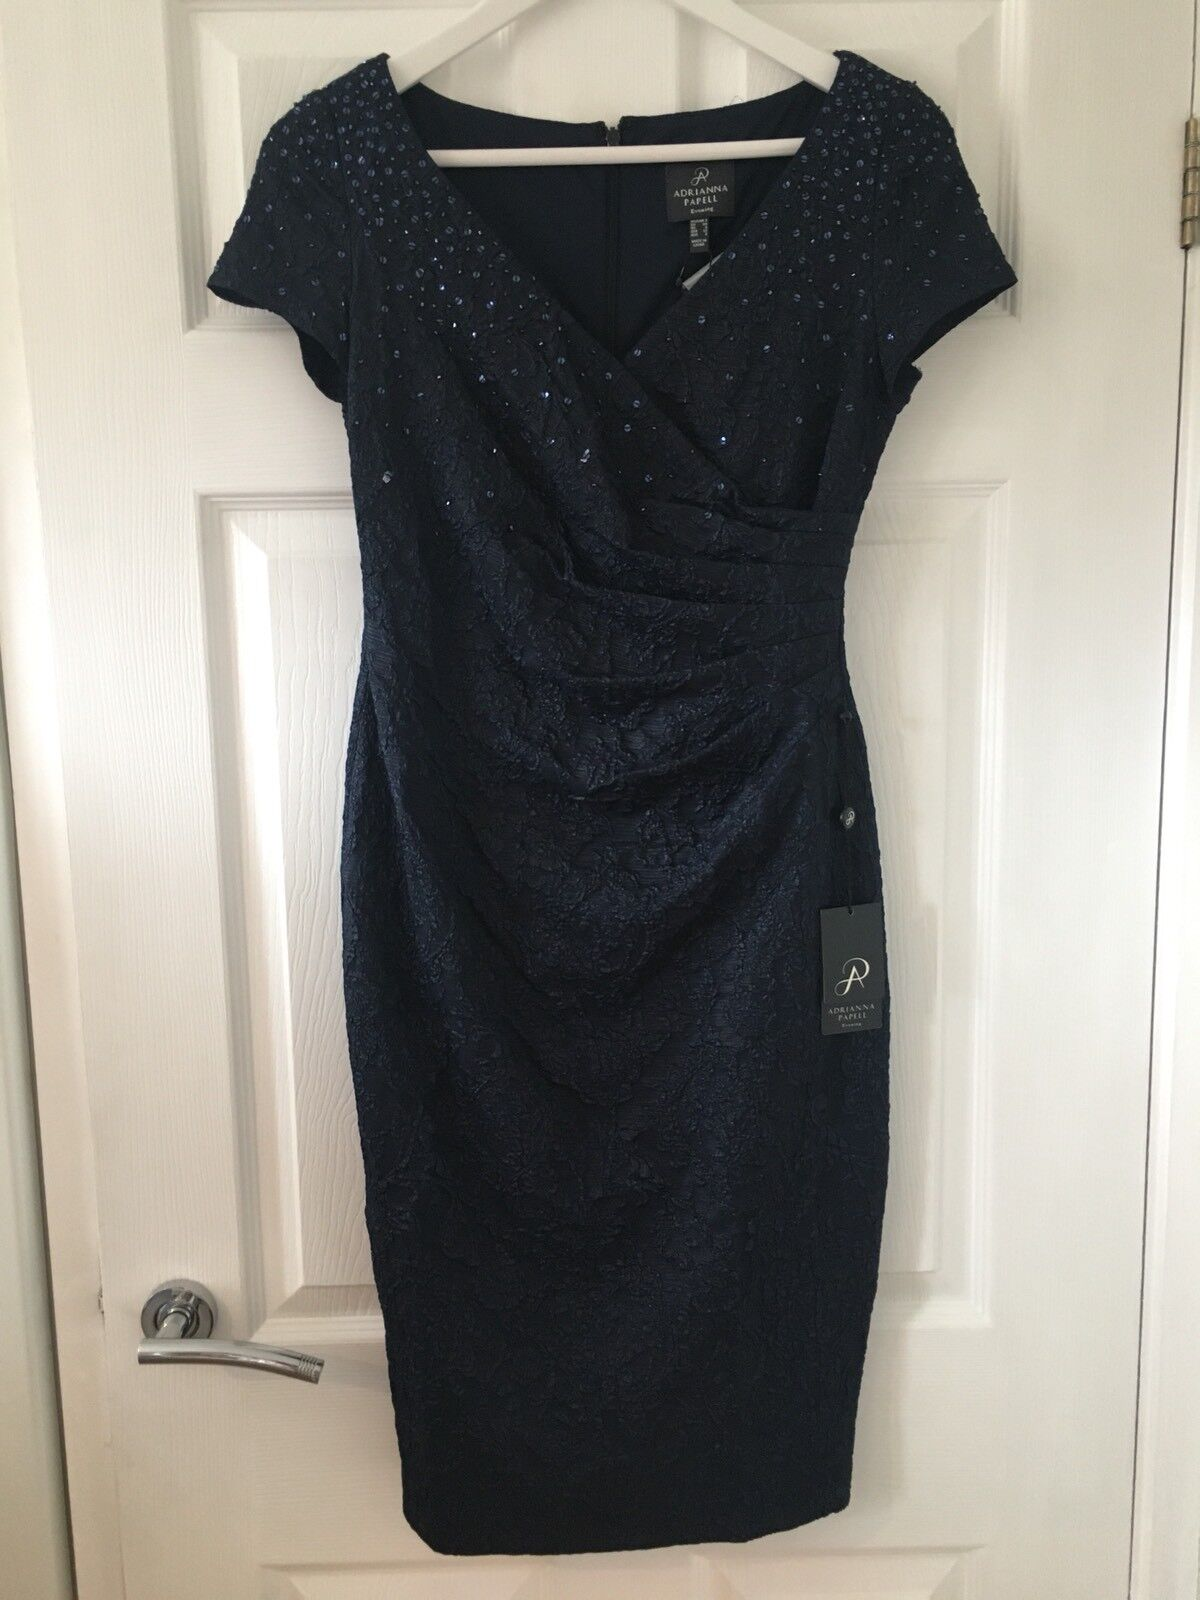 NEW - ADRIANNA PAPELL JACQUARD DRESS WITH PLEATED WRAP FRONT - NAVY SIZE